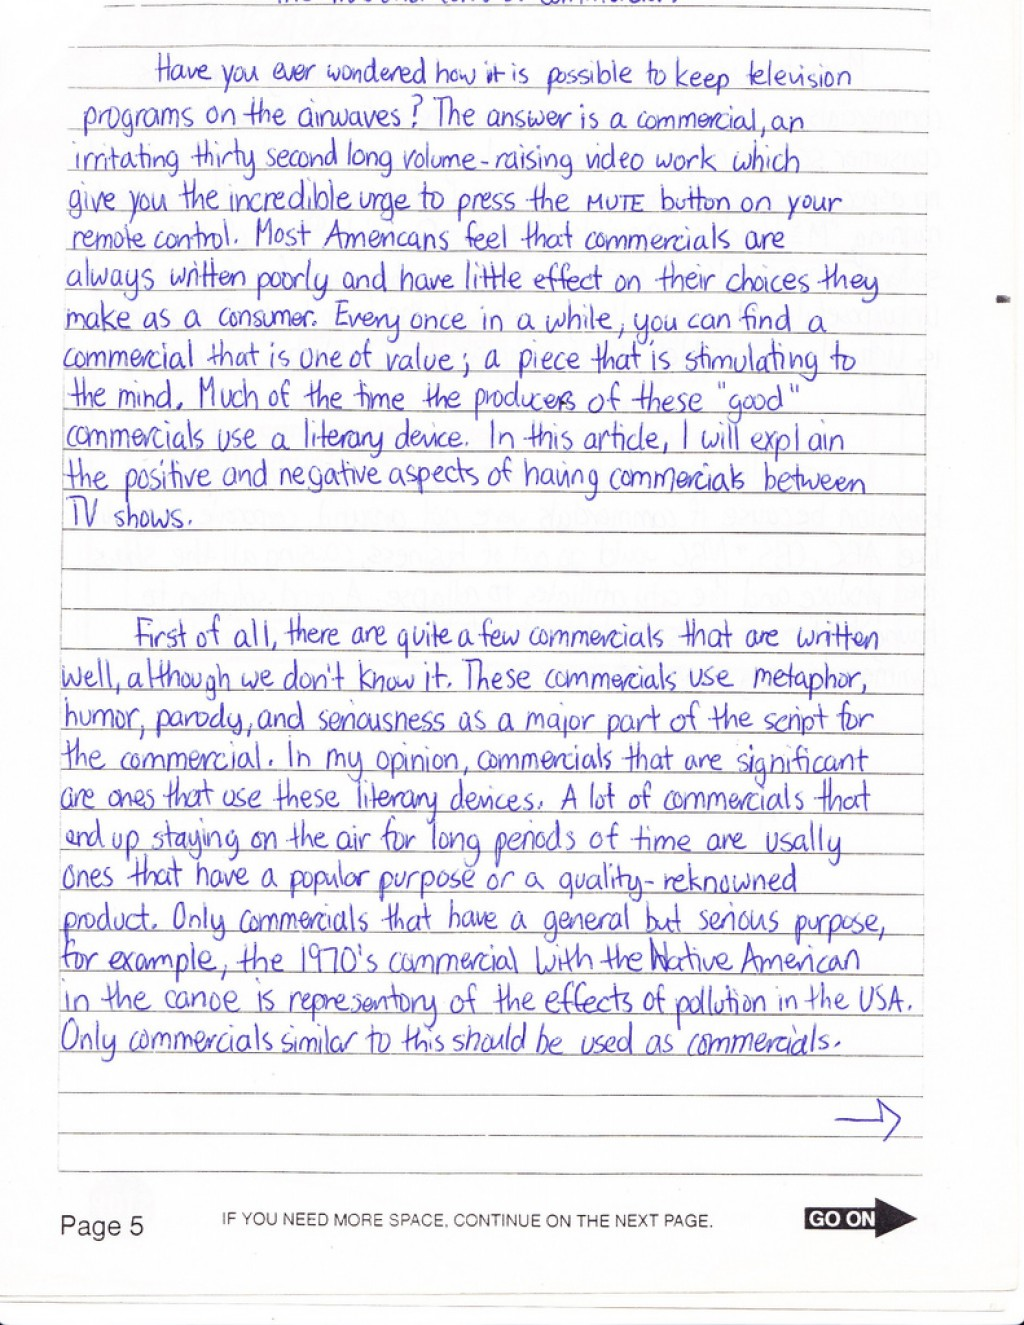 001 Sat Essay Average Score Example What Is Fearsome A Good For Ivy League New Large